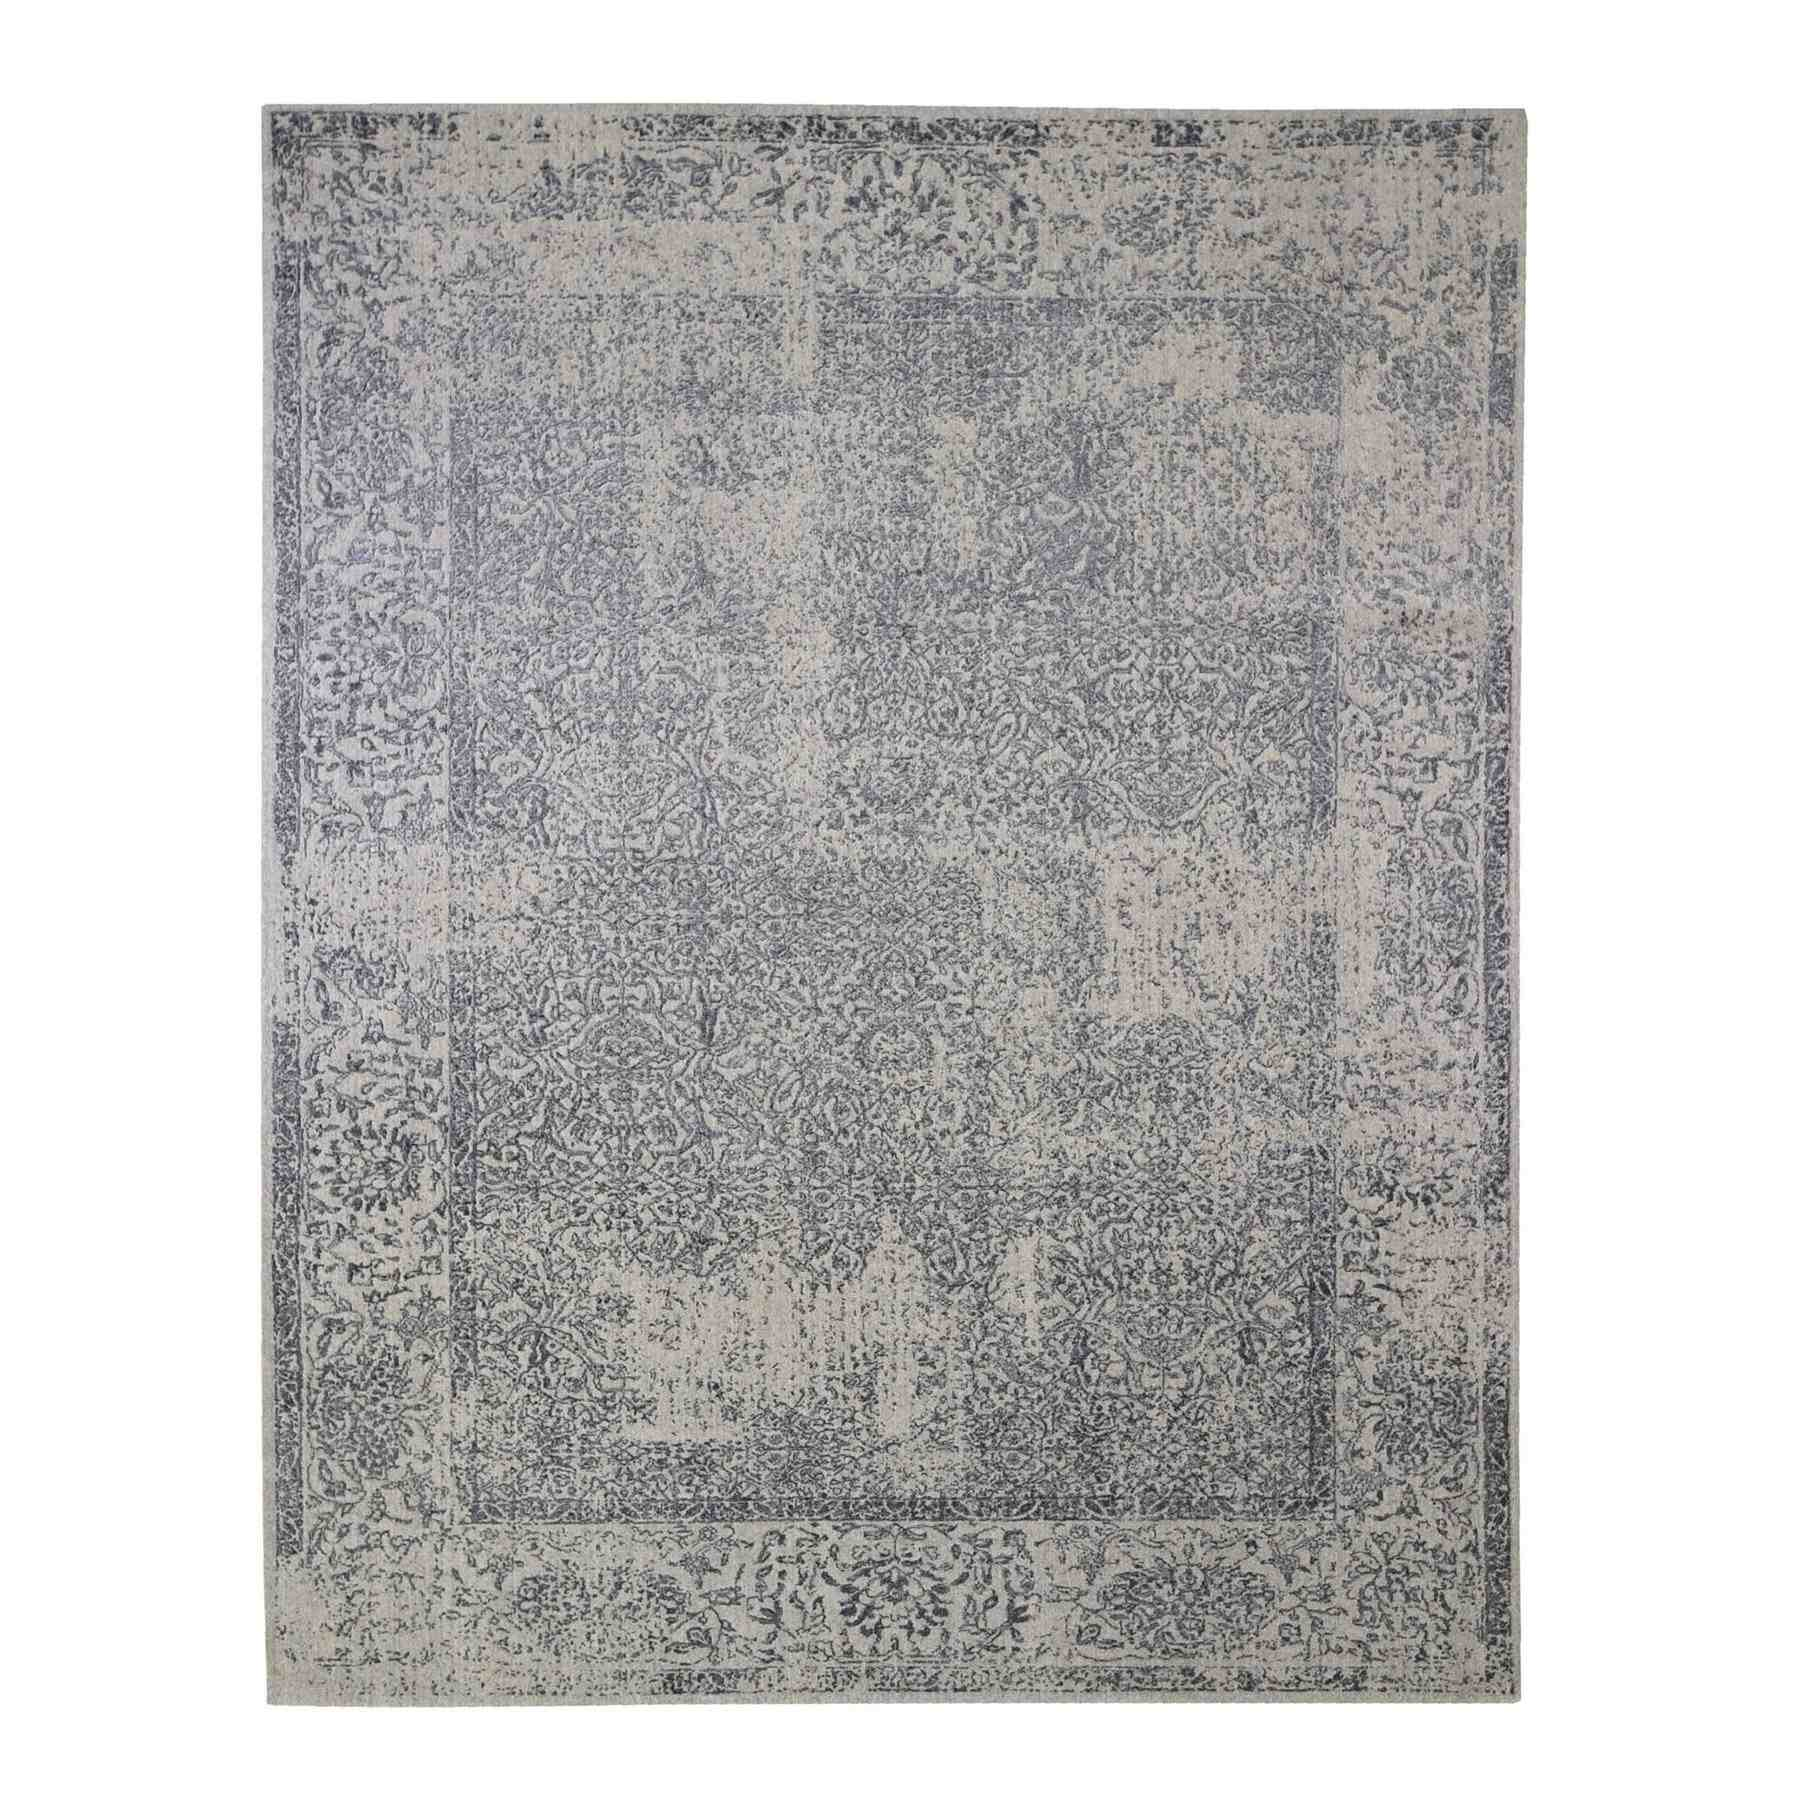 Gray Fine jacquard Hand Loomed Erased Design Wool and Silk Oriental Rug